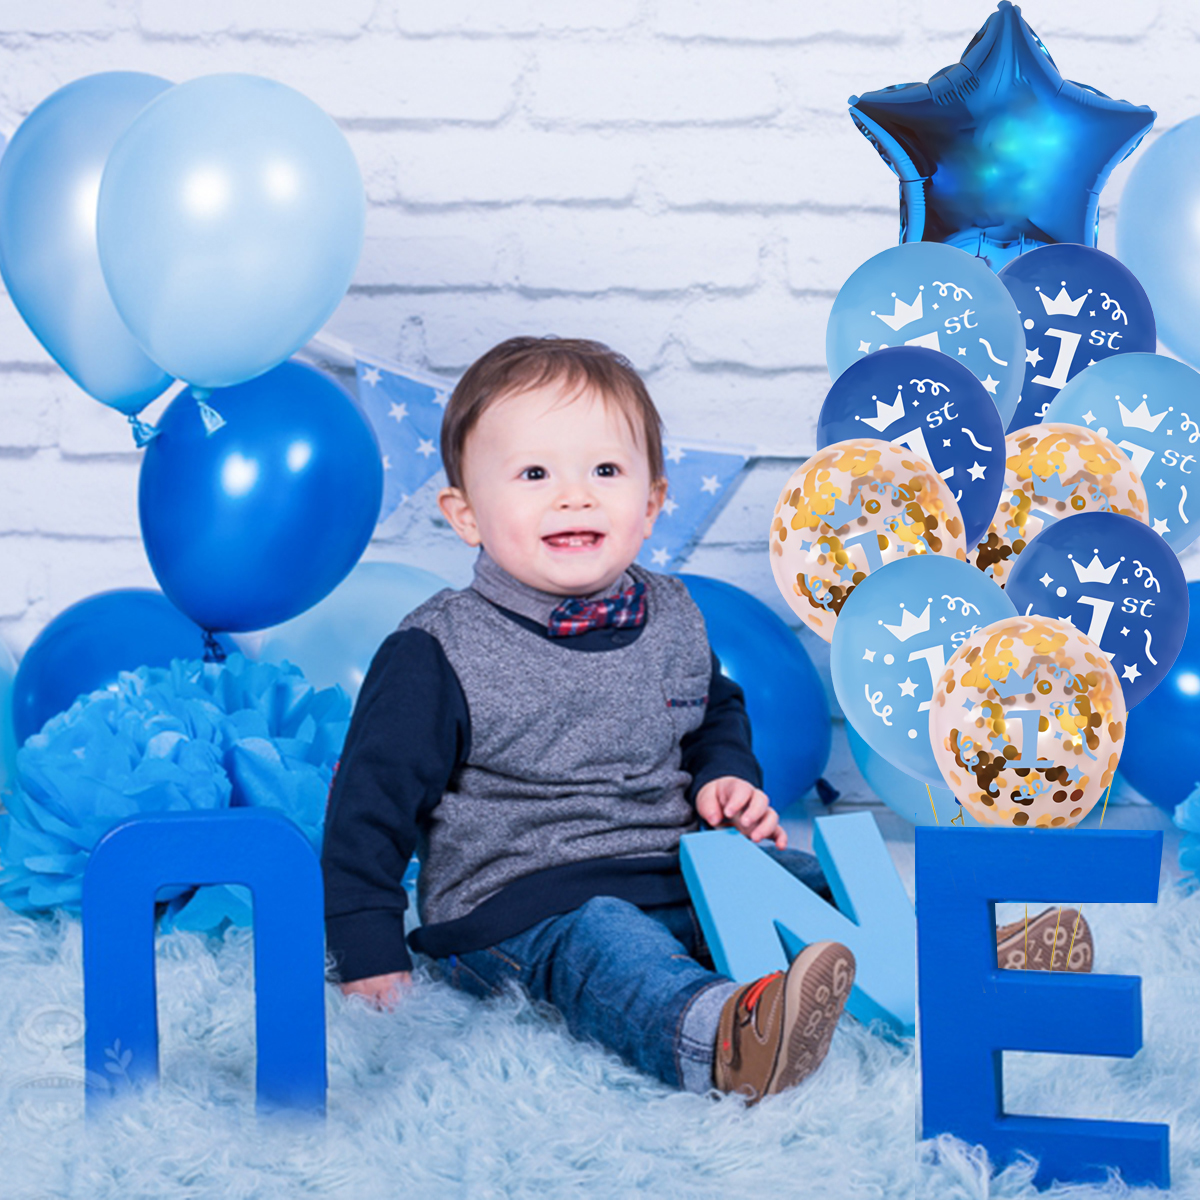 PATIMATE Baby 1st Birthday Balloons Girl Ballons Decoration Birthday 1 Year Baloon Boy Helium Balloon Number Letax Balon in Ballons Accessories from Home Garden